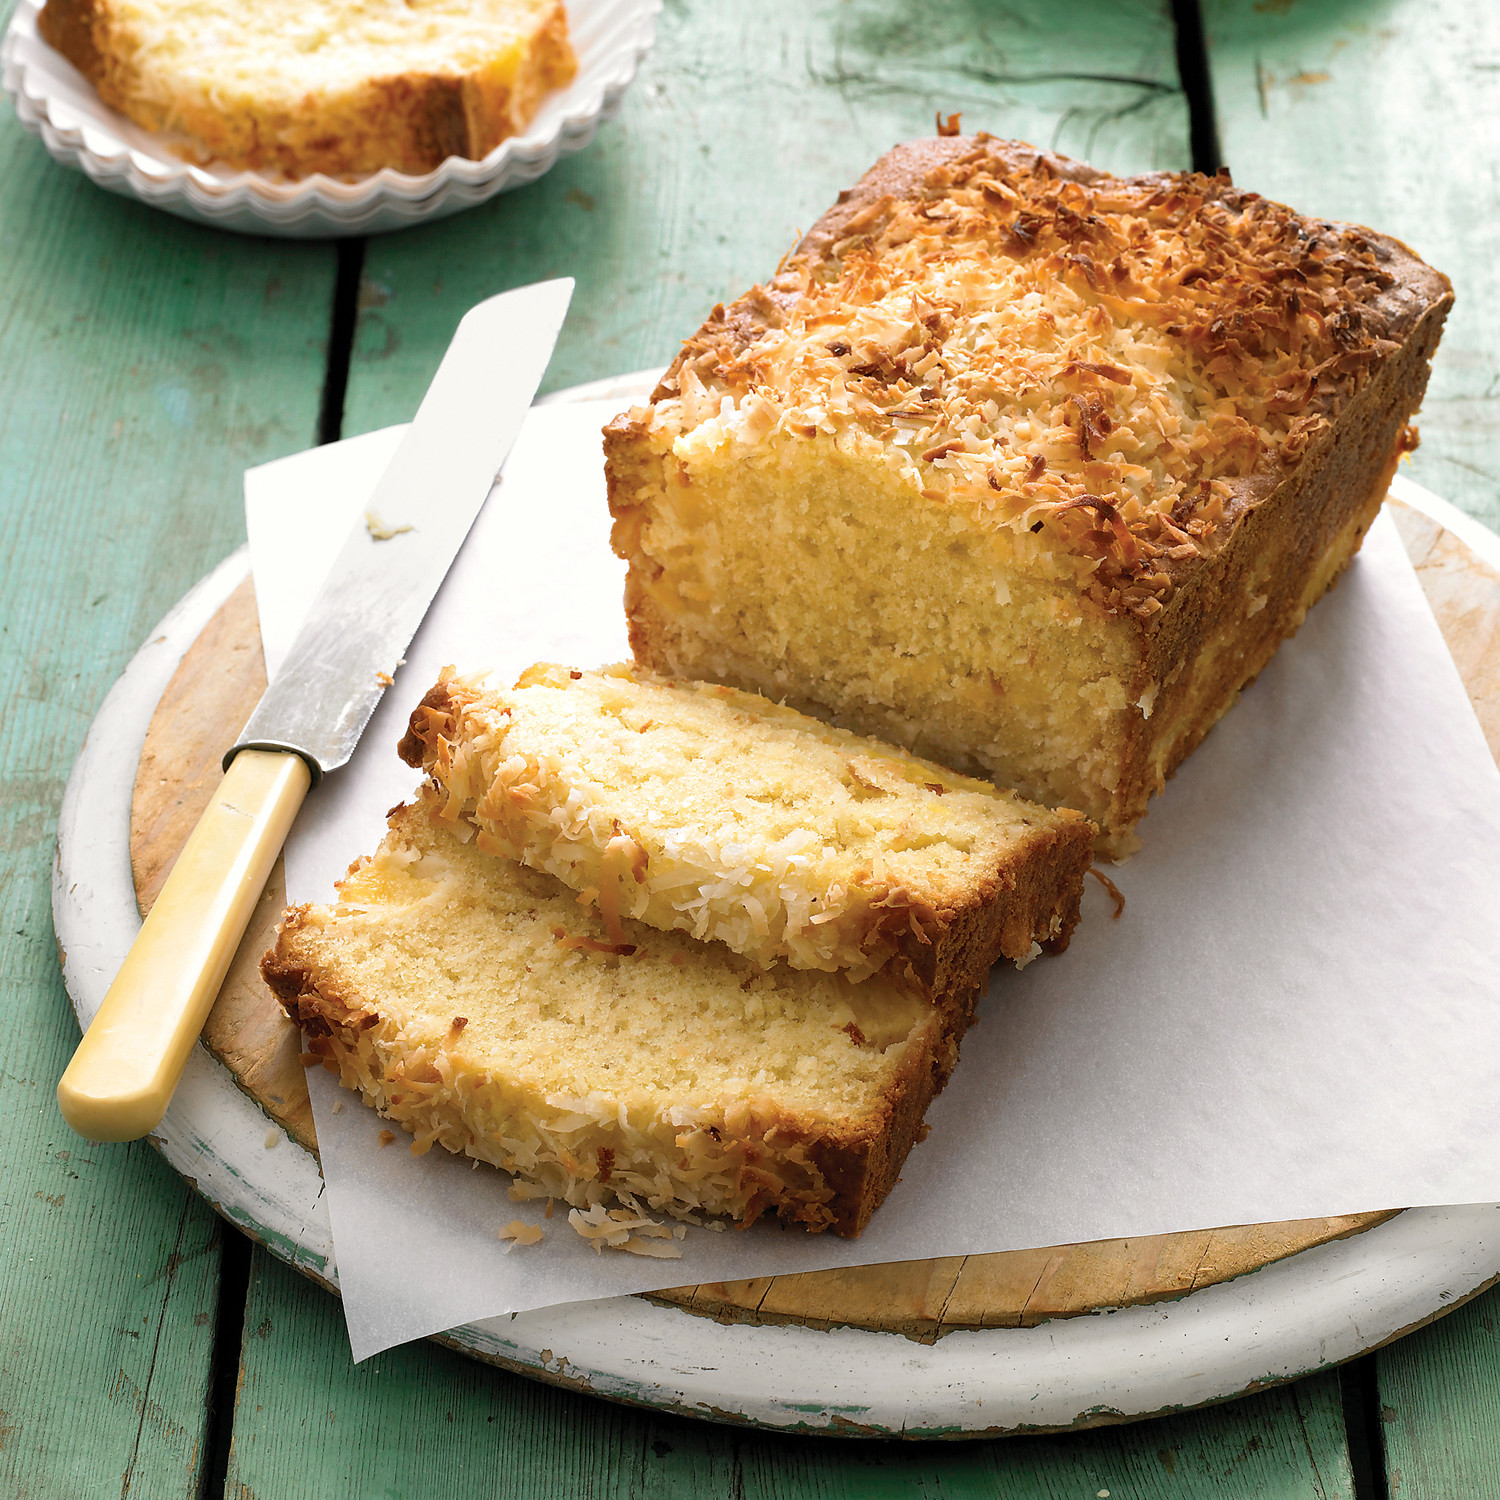 Recipe for a pineapple coconut cake